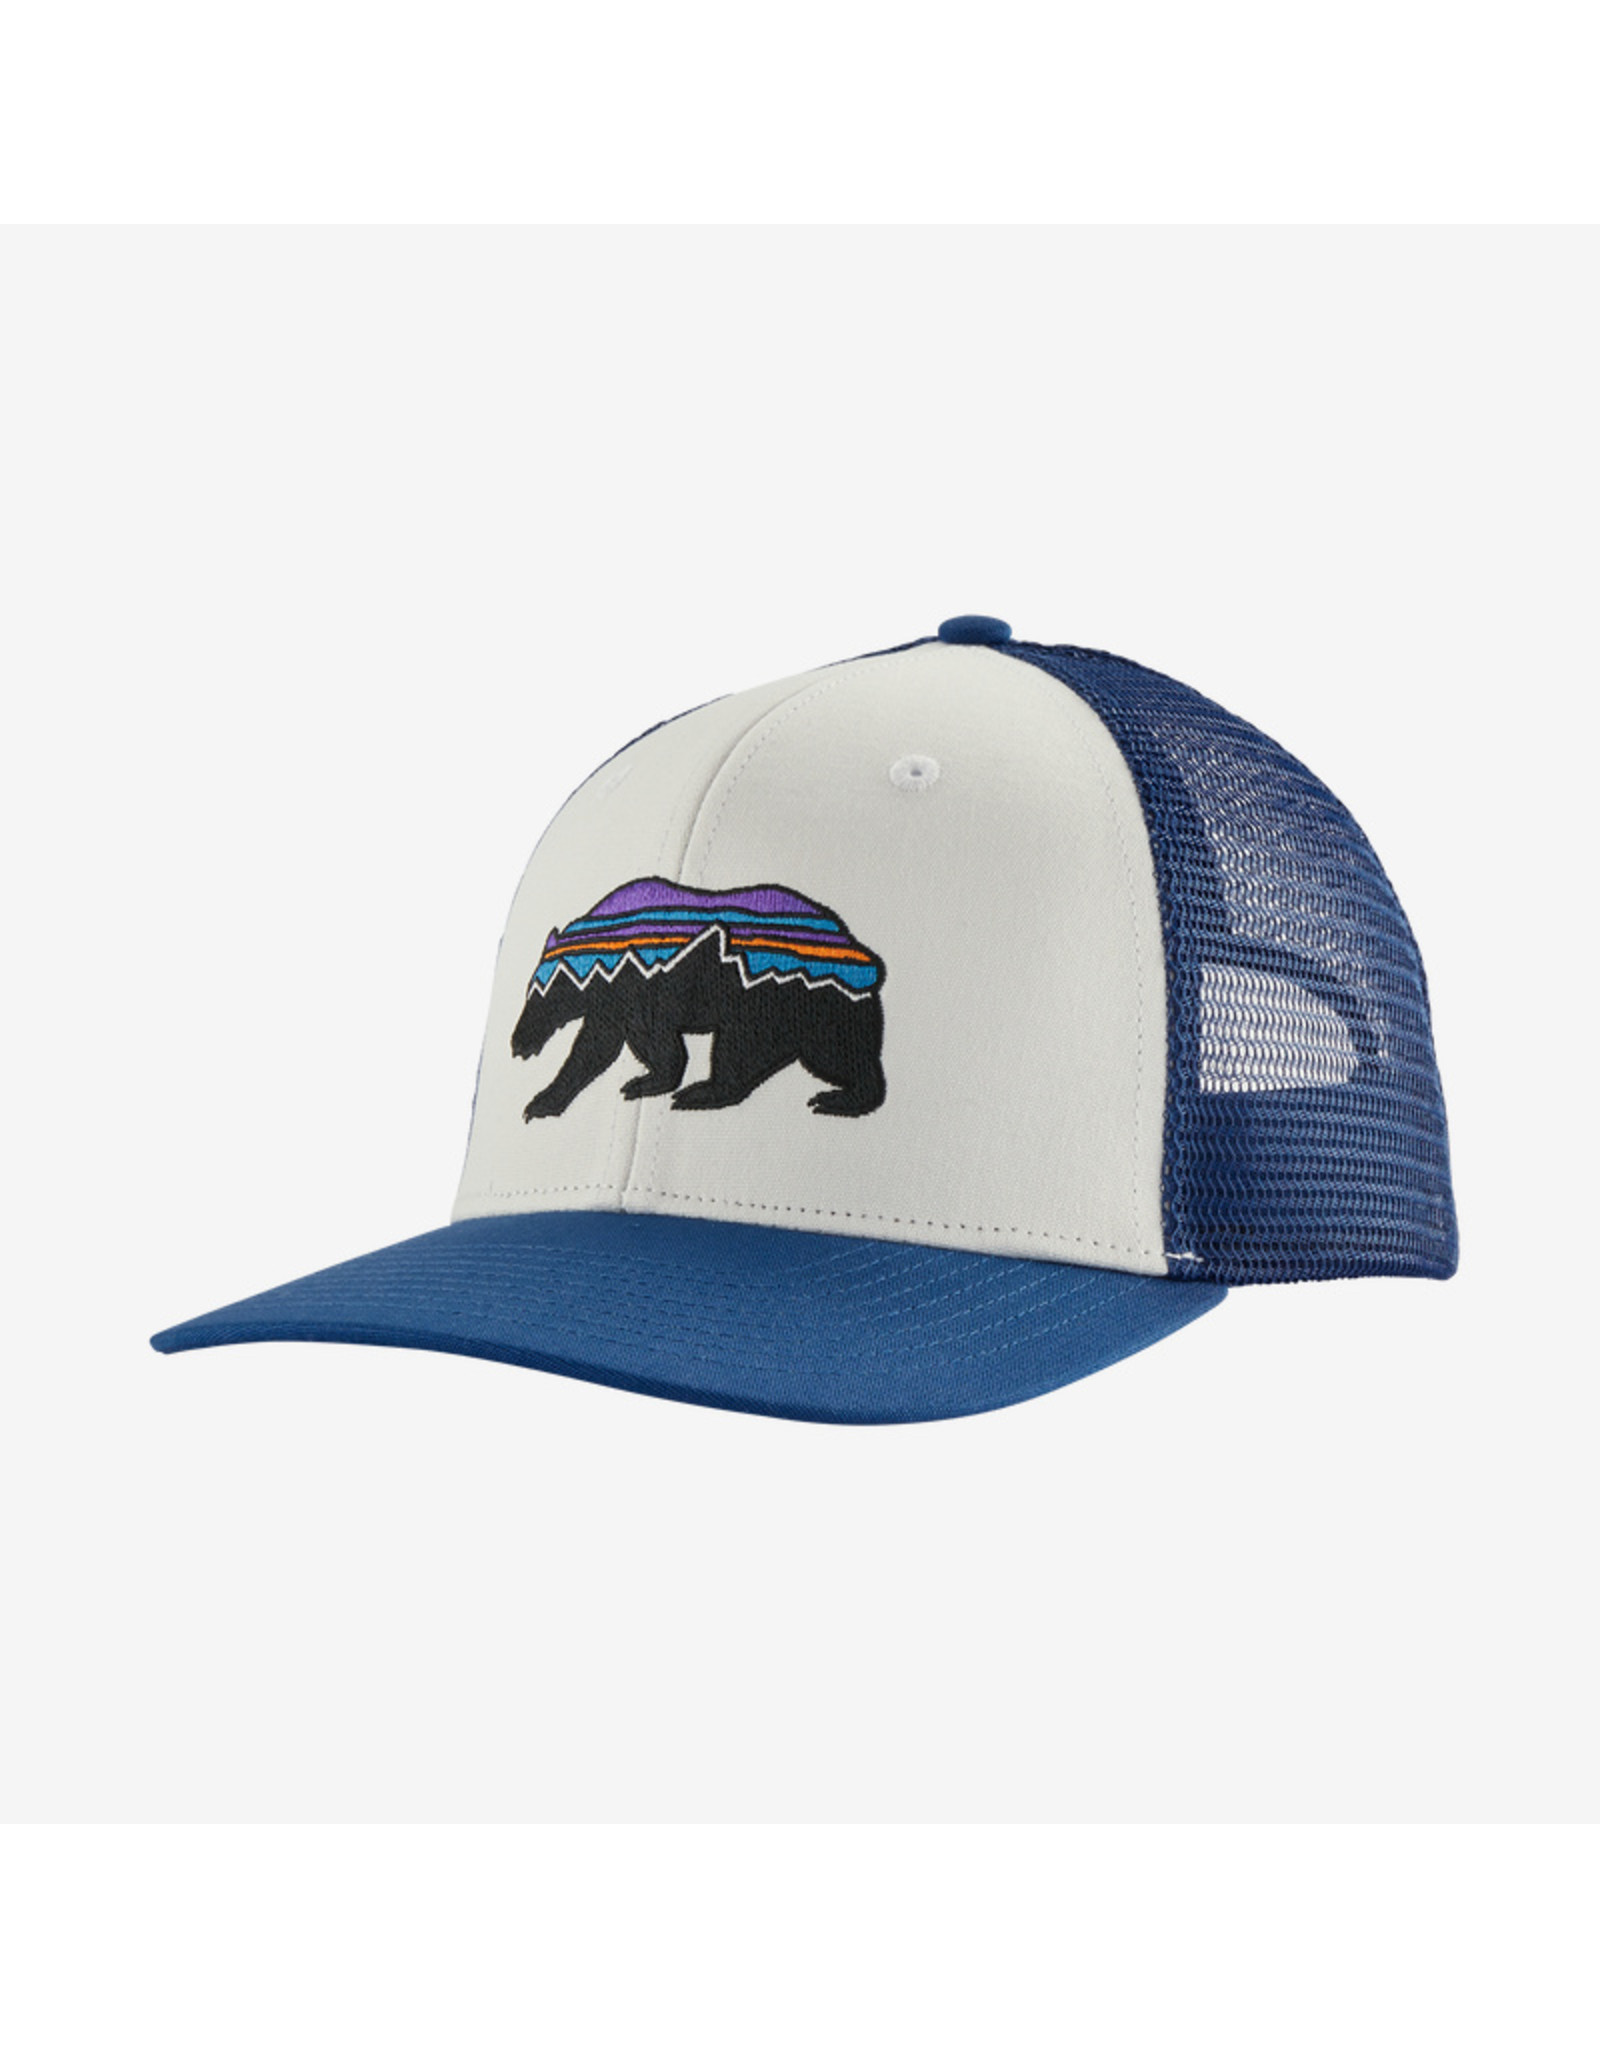 Patagonia Patagonia - Fitz Roy Bear Trucker Hat - Mid-Crown